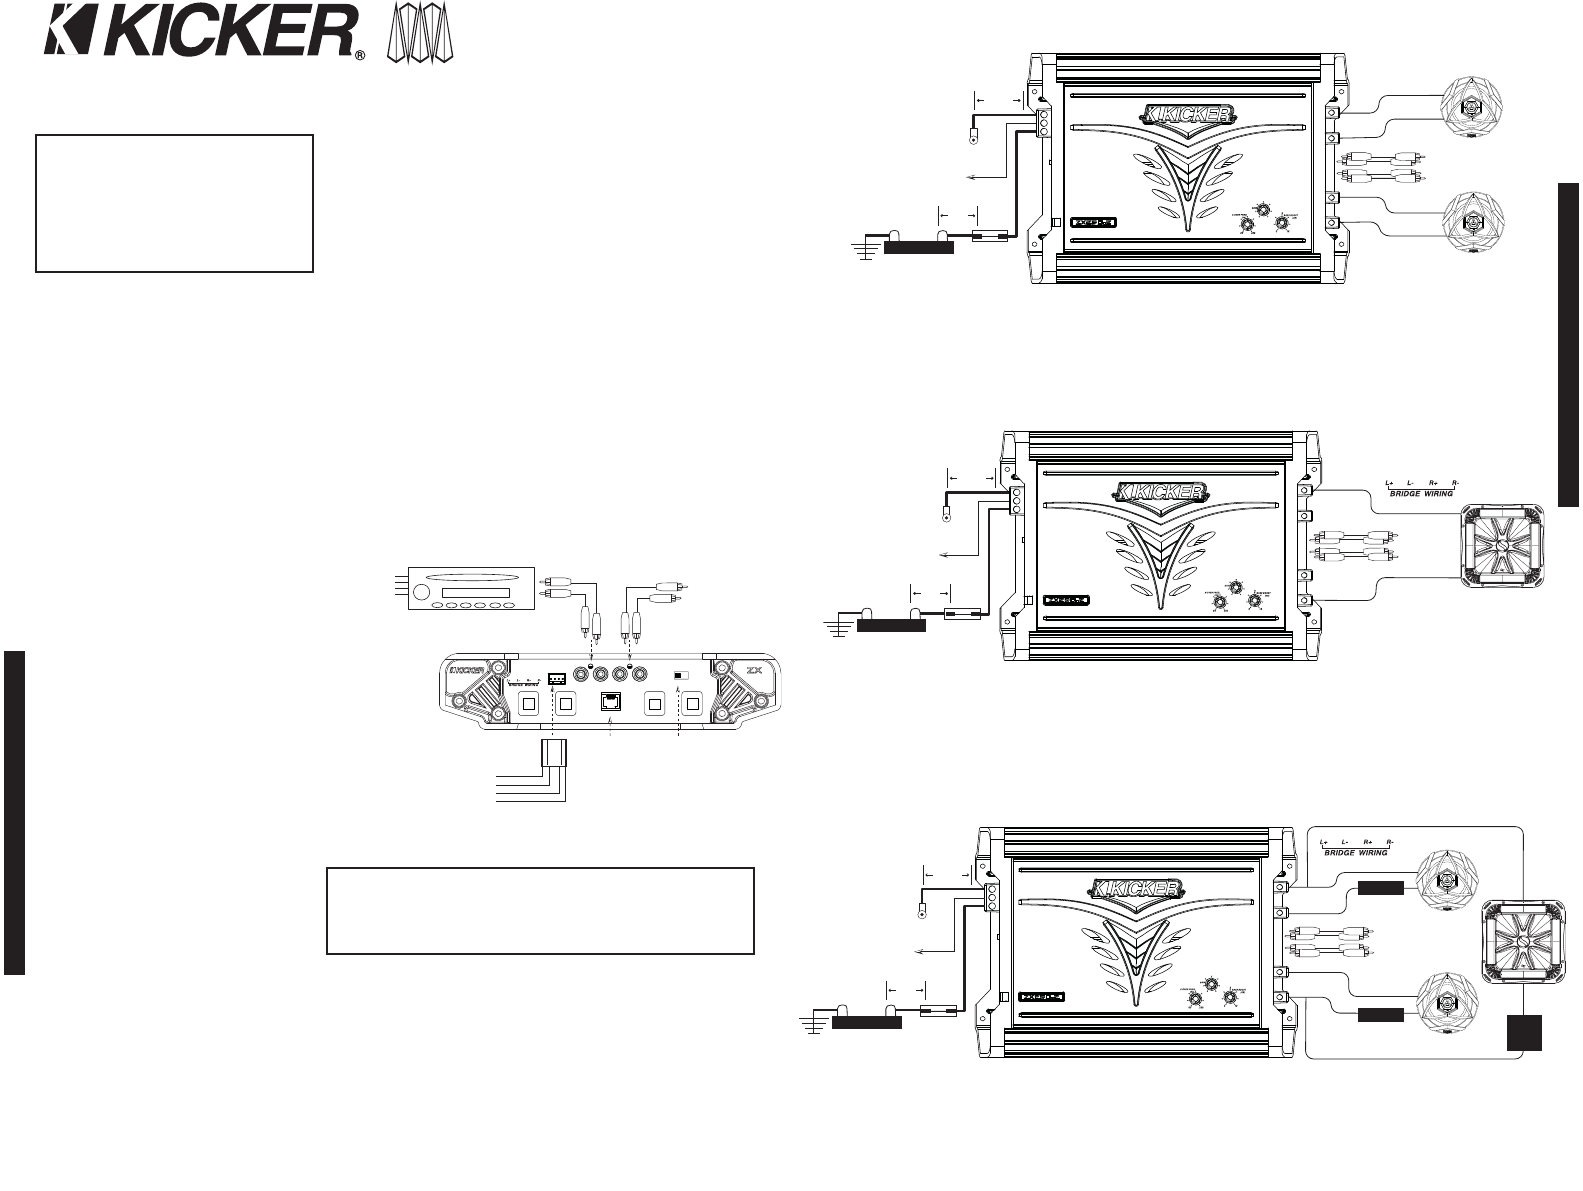 Rockford Fosgate 300 Wiring Diagrams